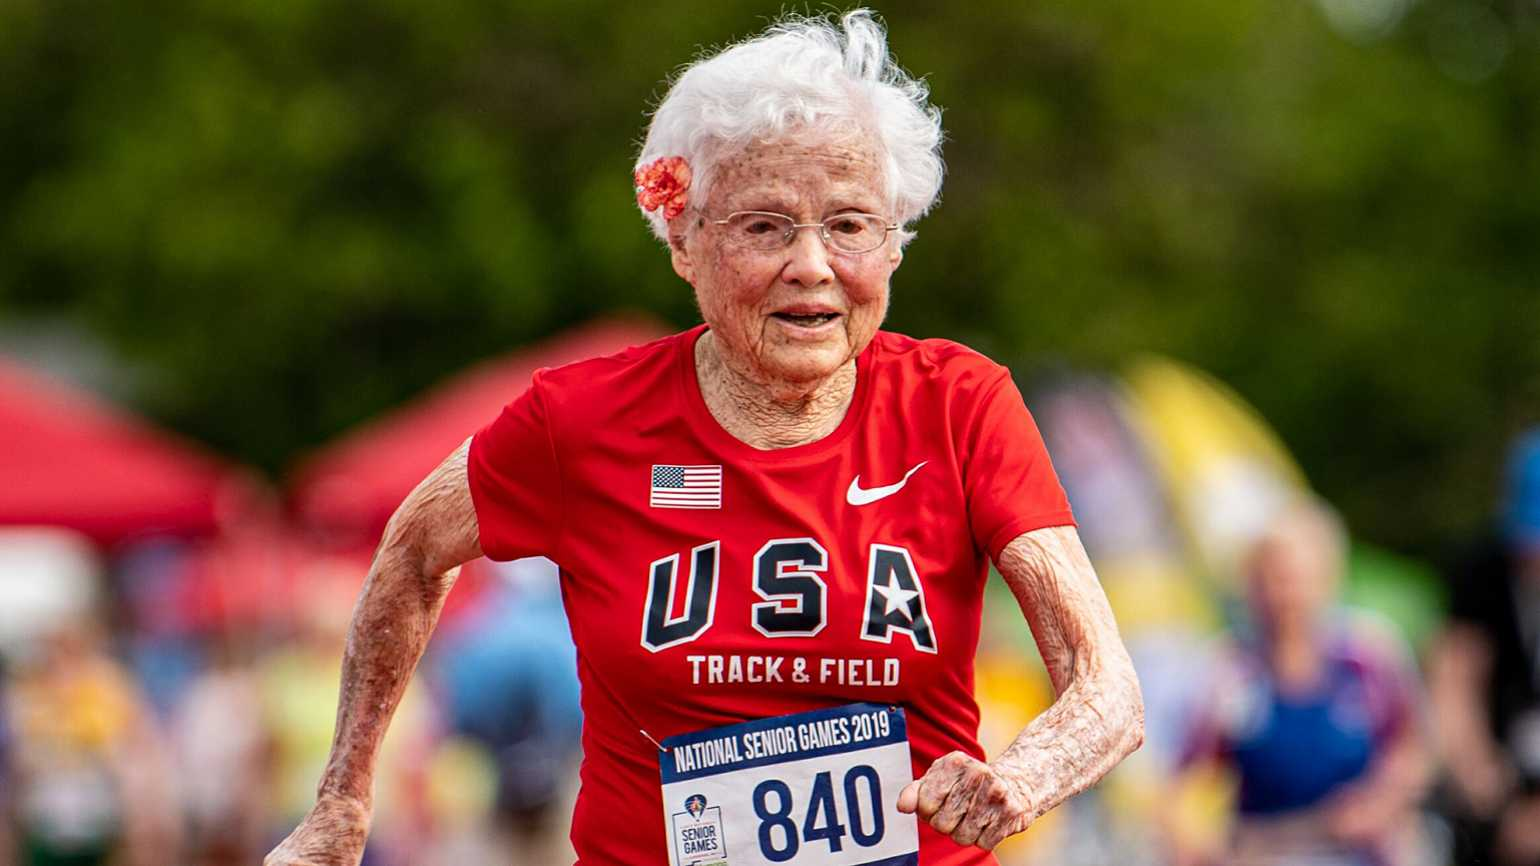 Julia Hawkins at the 2019 National Senior Games